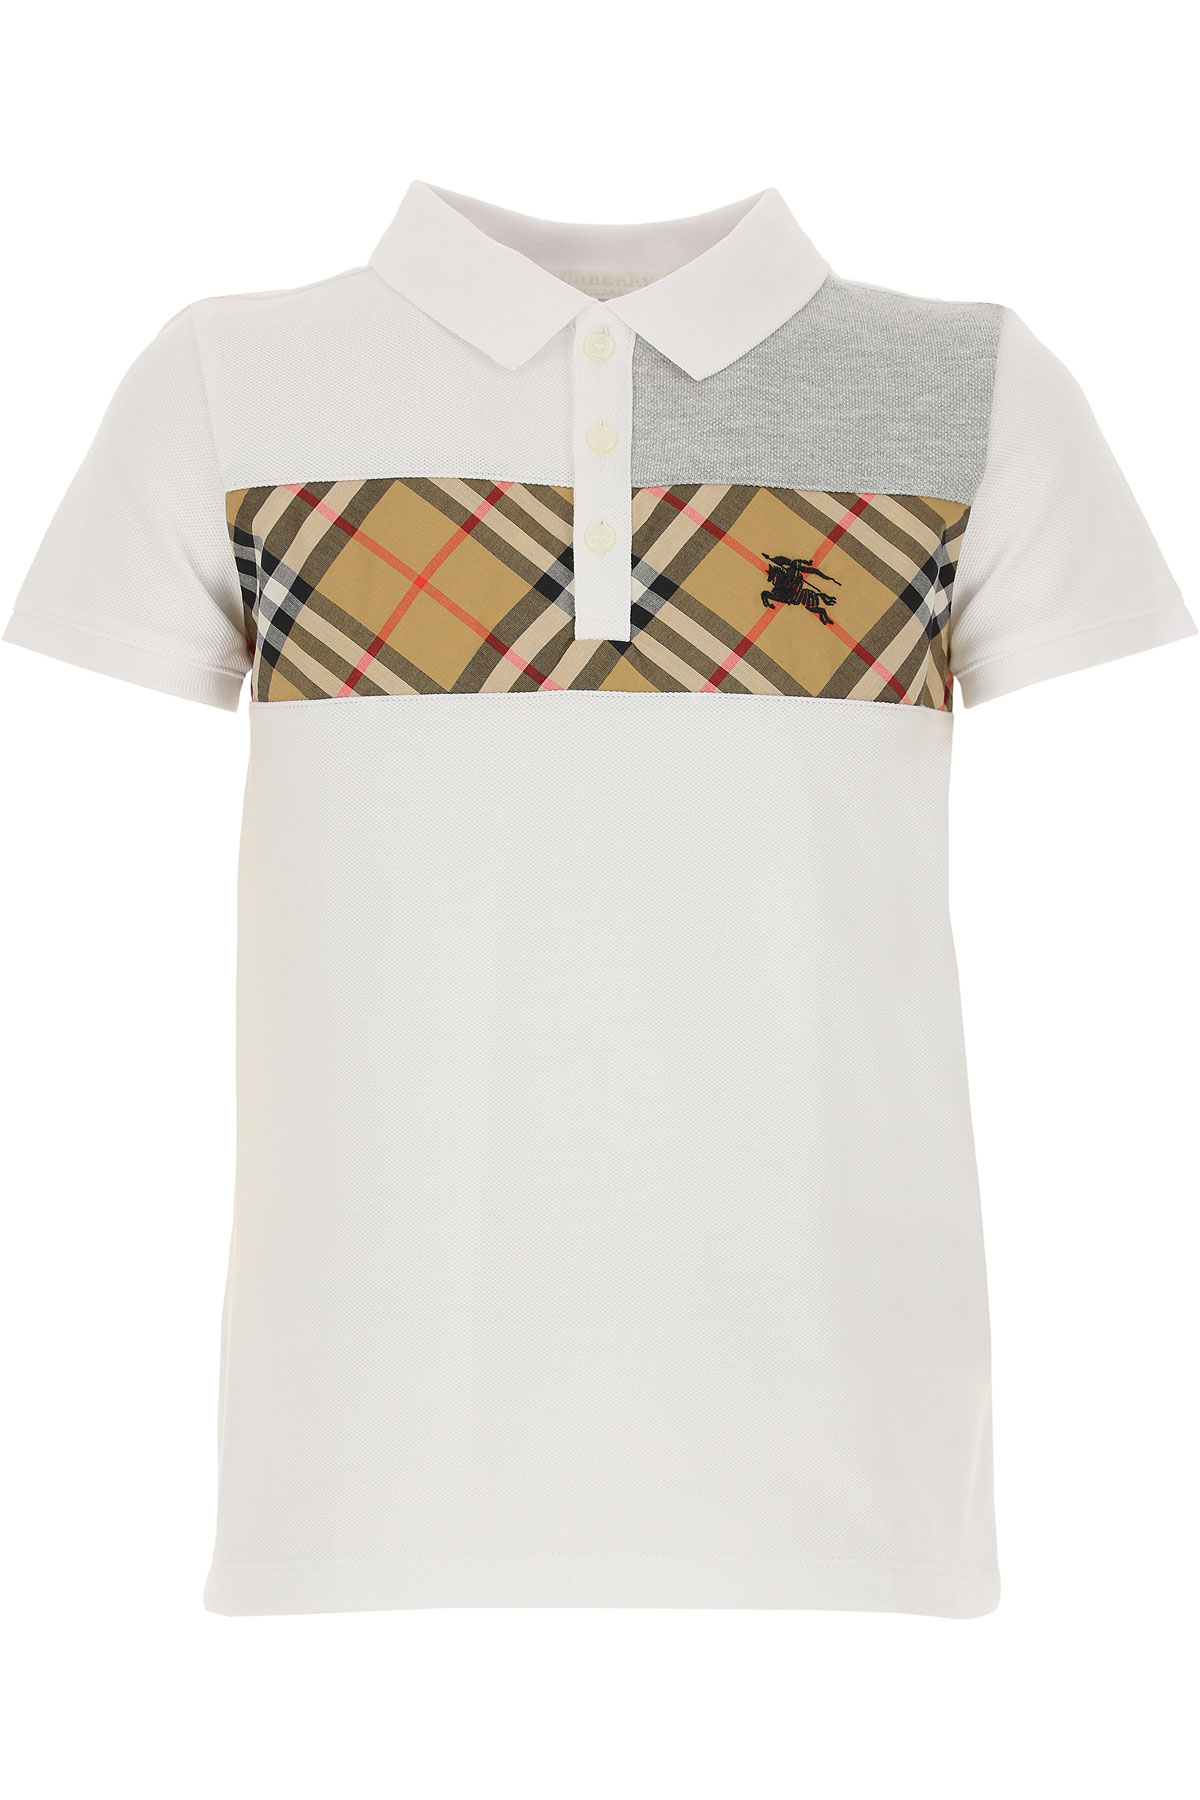 Image of Burberry Kids Polo Shirt for Boys, White, Cotton, 2017, 10Y 14Y 6Y 8Y